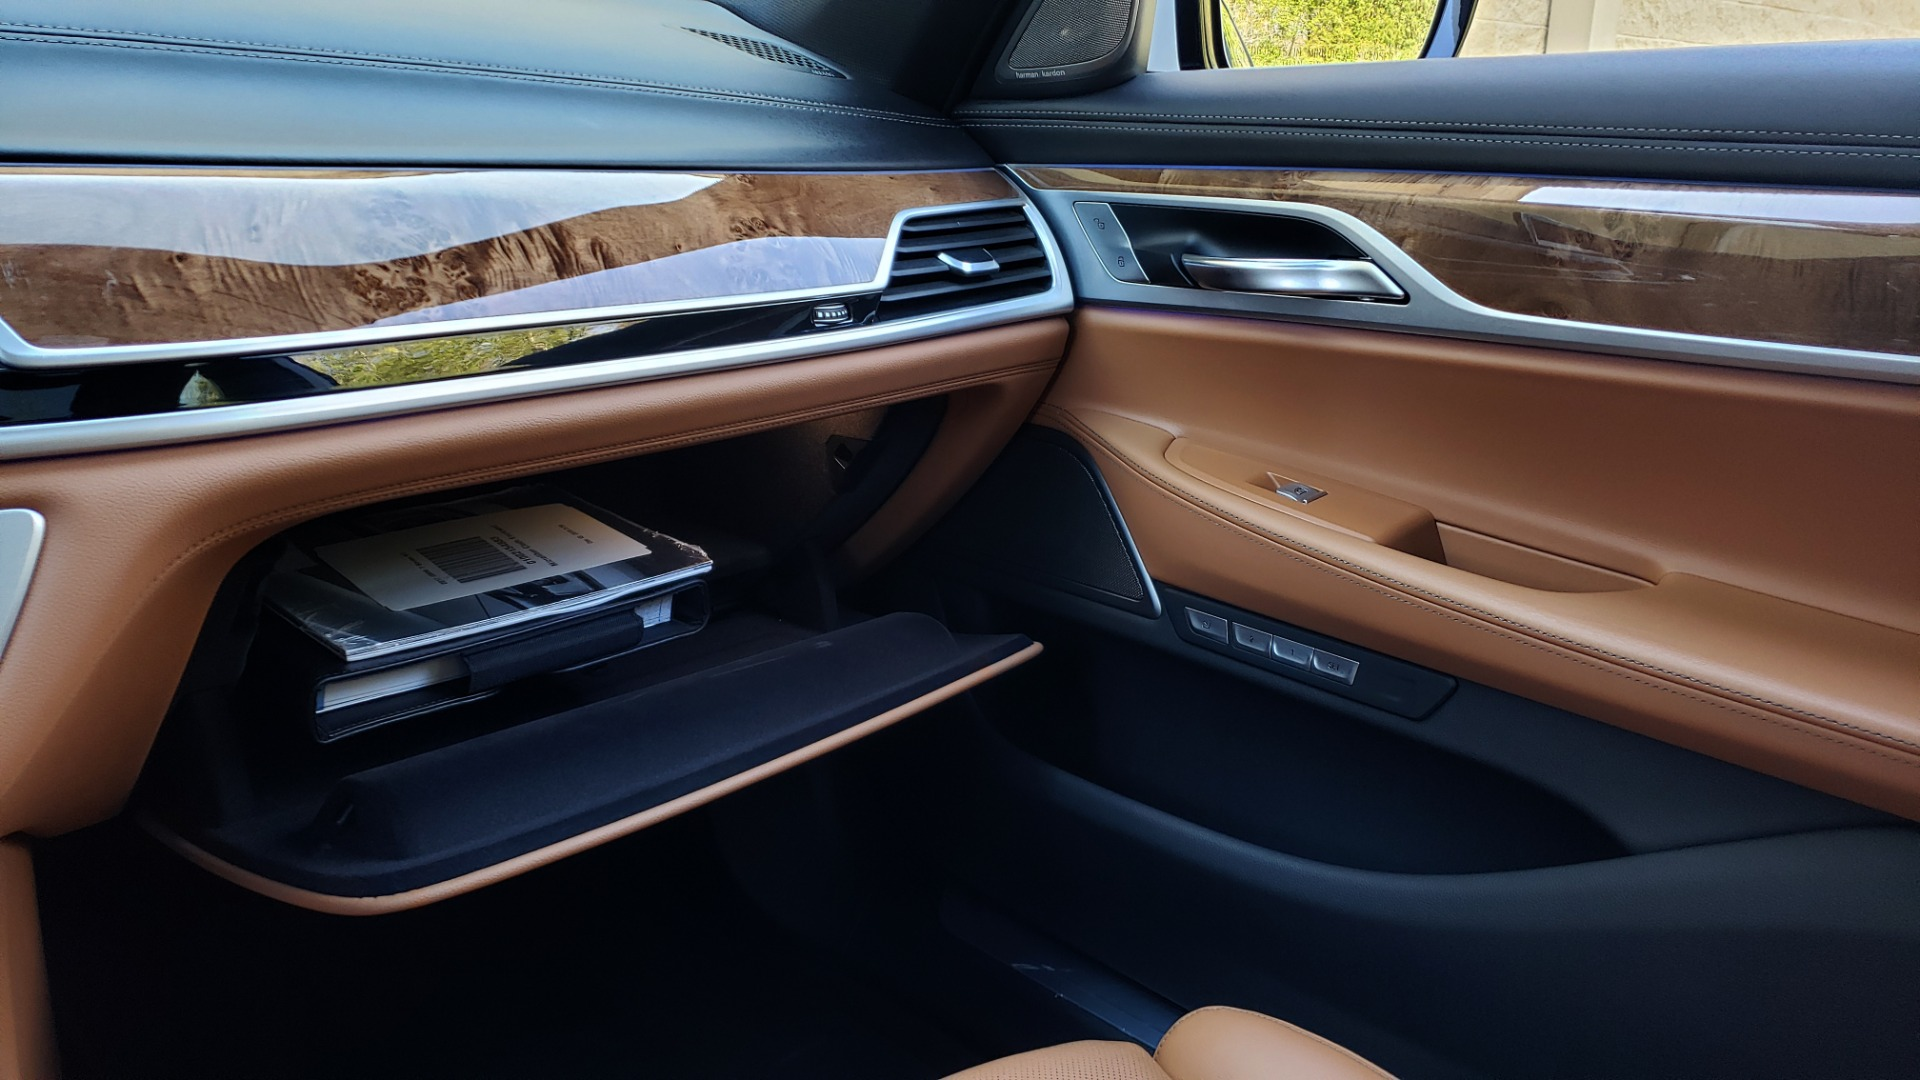 Used 2017 BMW 7 SERIES 750I XDRIVE / M-SPORT / EXEC PKG / DRVR ASST PLUS II / CLD WTHR for sale $48,495 at Formula Imports in Charlotte NC 28227 53